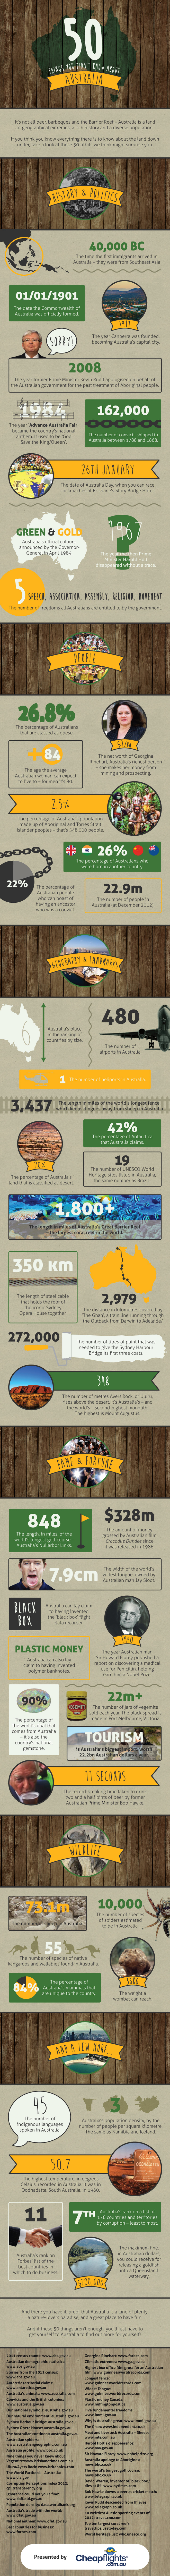 A few Things You Didn't Know About Australia